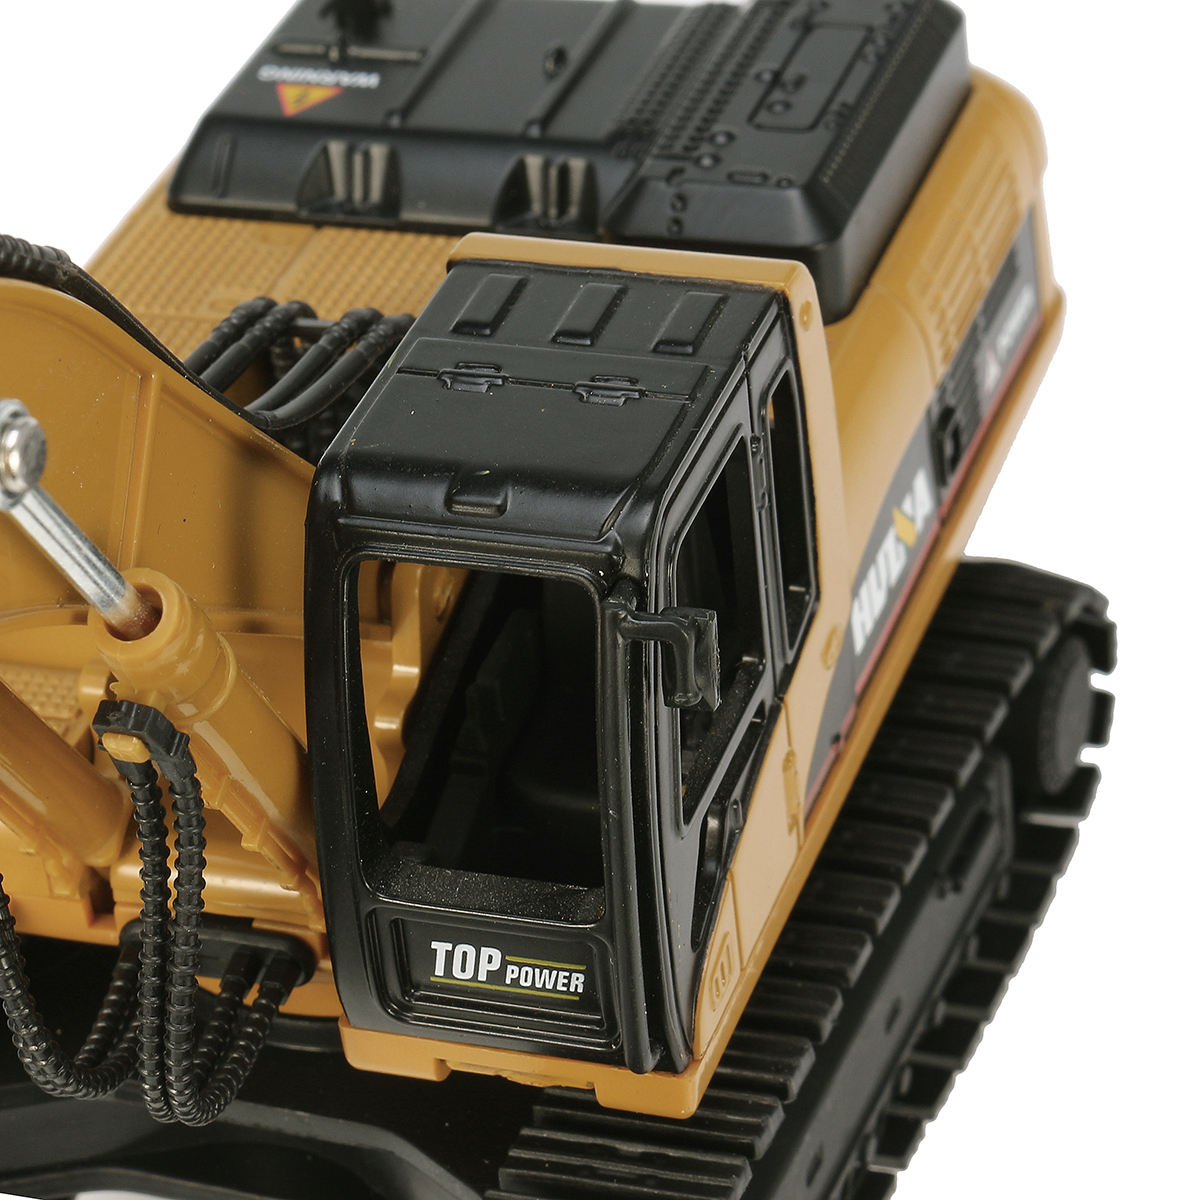 HUINA 7713-1 1/50 Scale Alloy Timber Grab Diecast Model Engineering Digging Toys